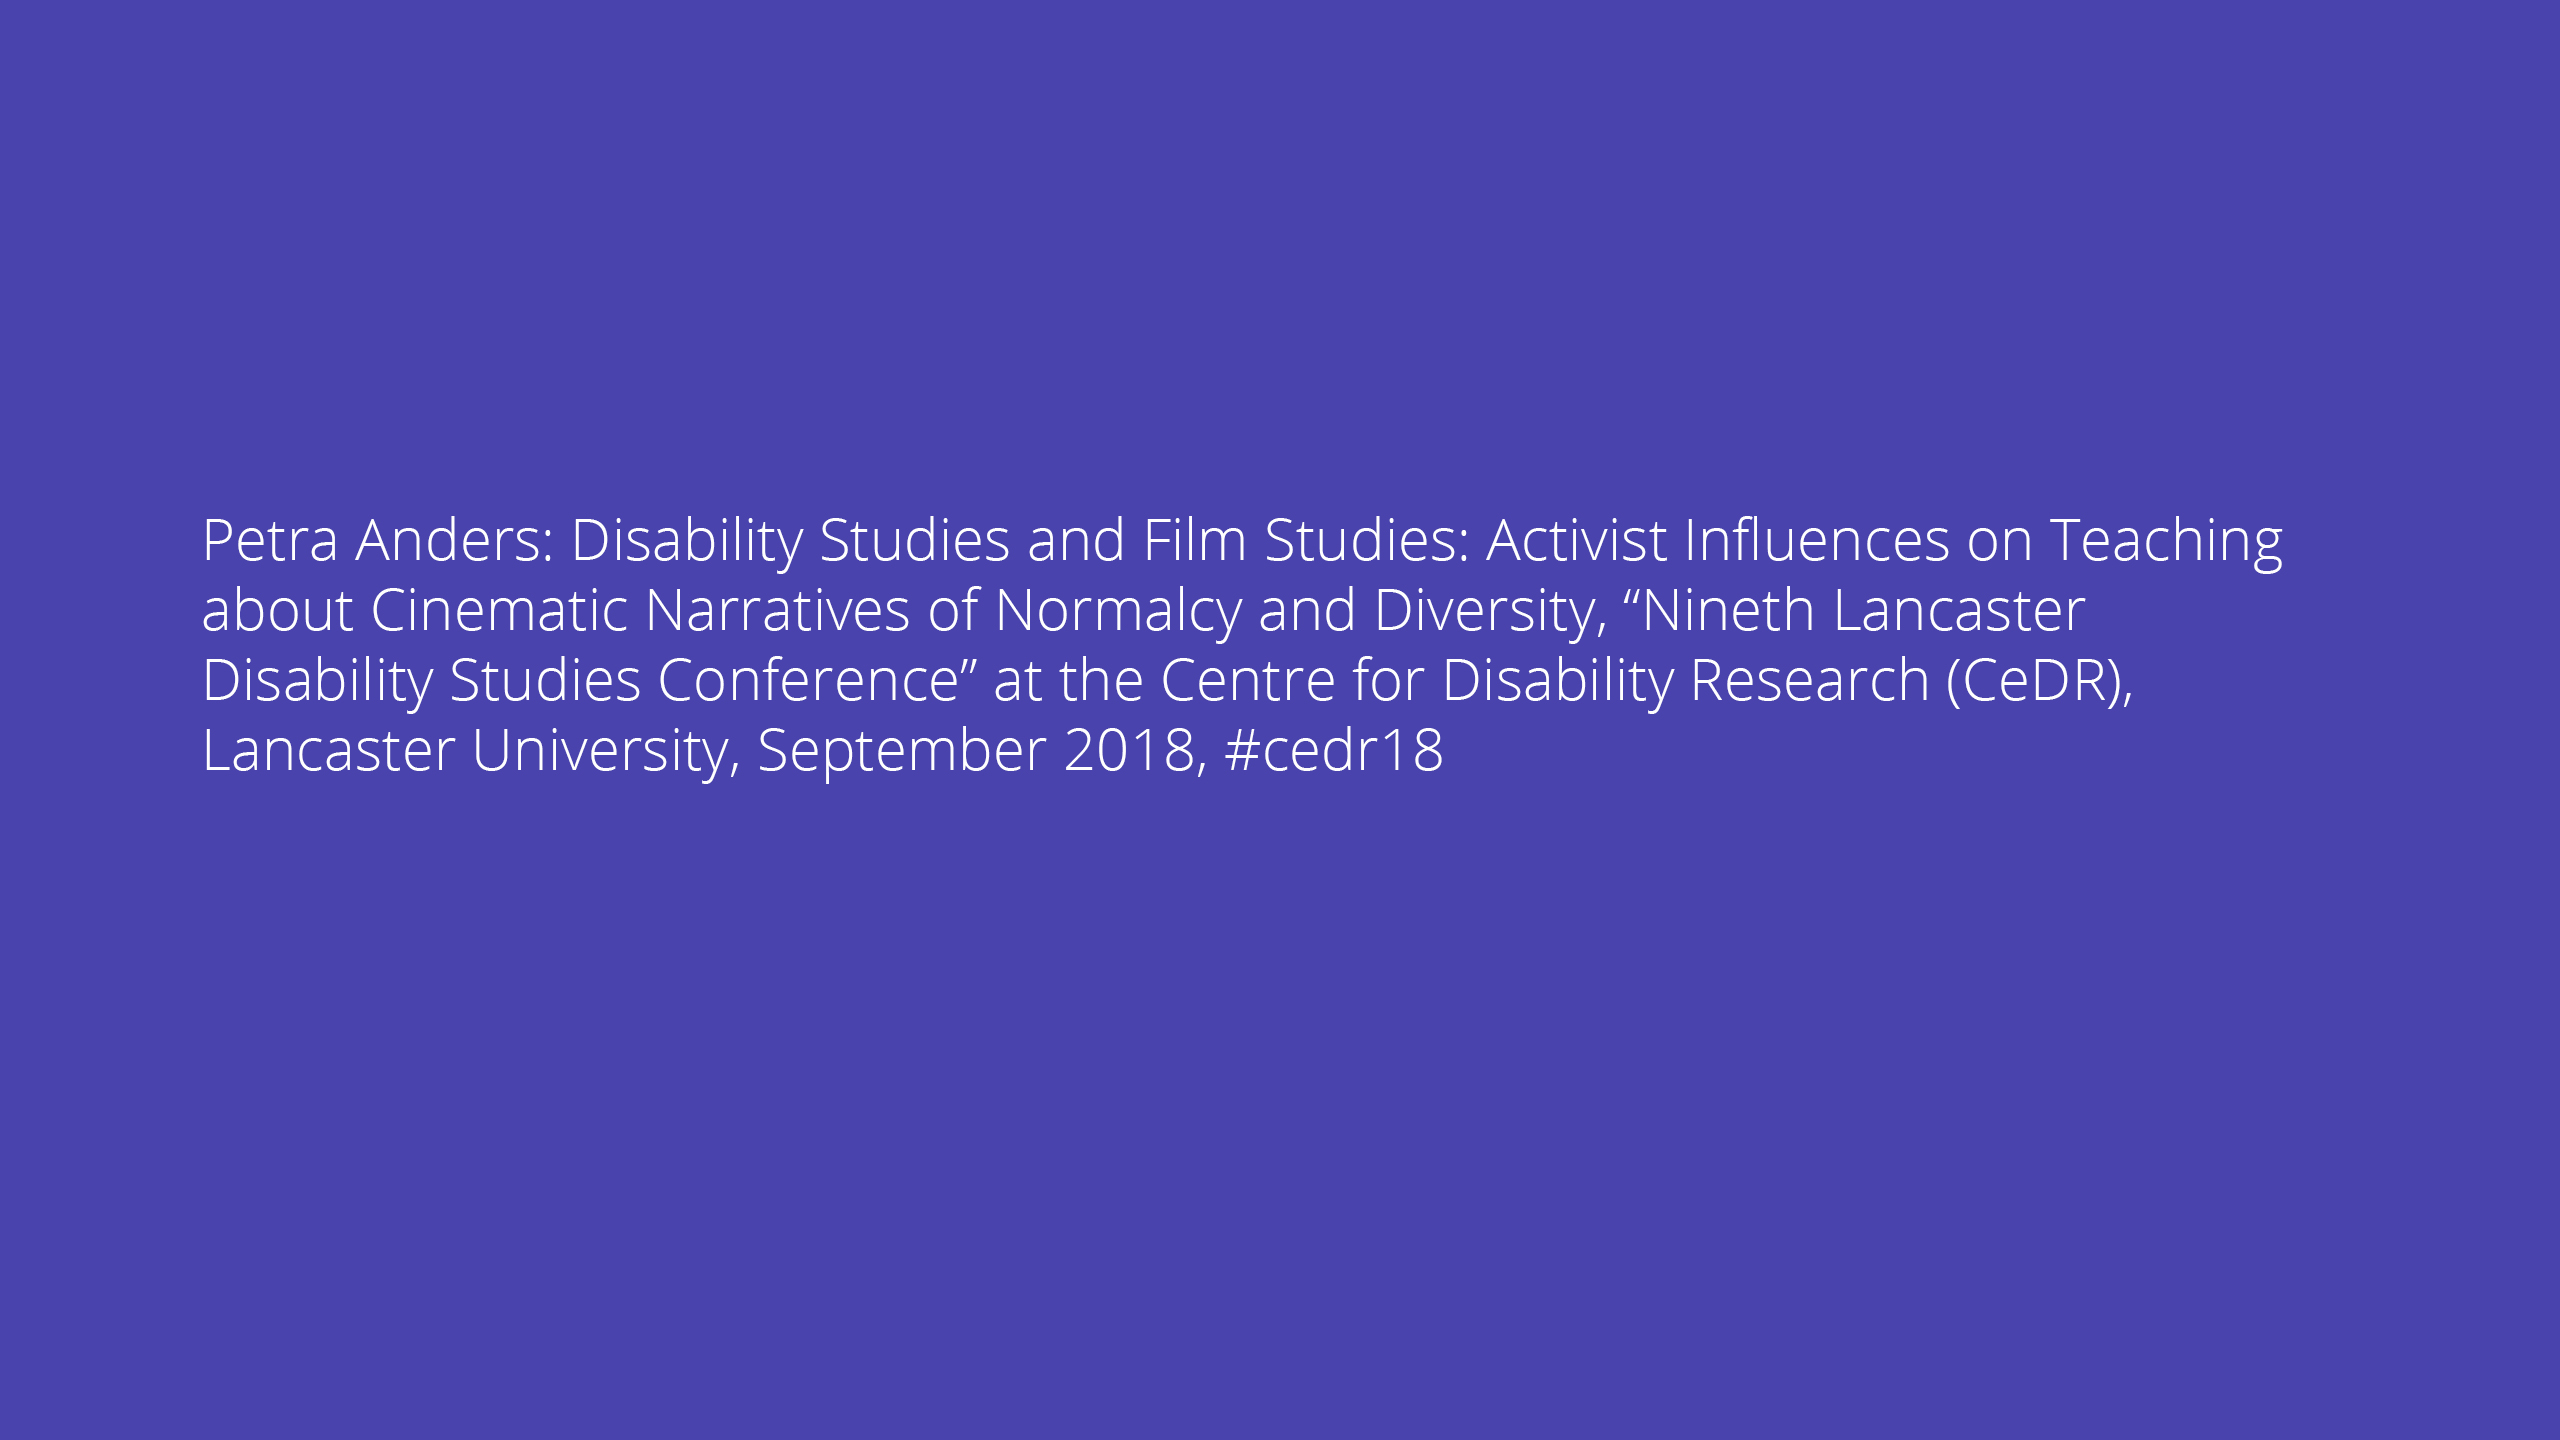 "Petra Anders: Disability Studies and Film Studies: Activist Influences on Teaching about Cinematic Narratives of Normalcy and Diversity, ""Nineth Lancaster Disability Studies Conference"" at the Centre for Disability Research (CeDR), Lancaster University, September 2018, #cedr18"